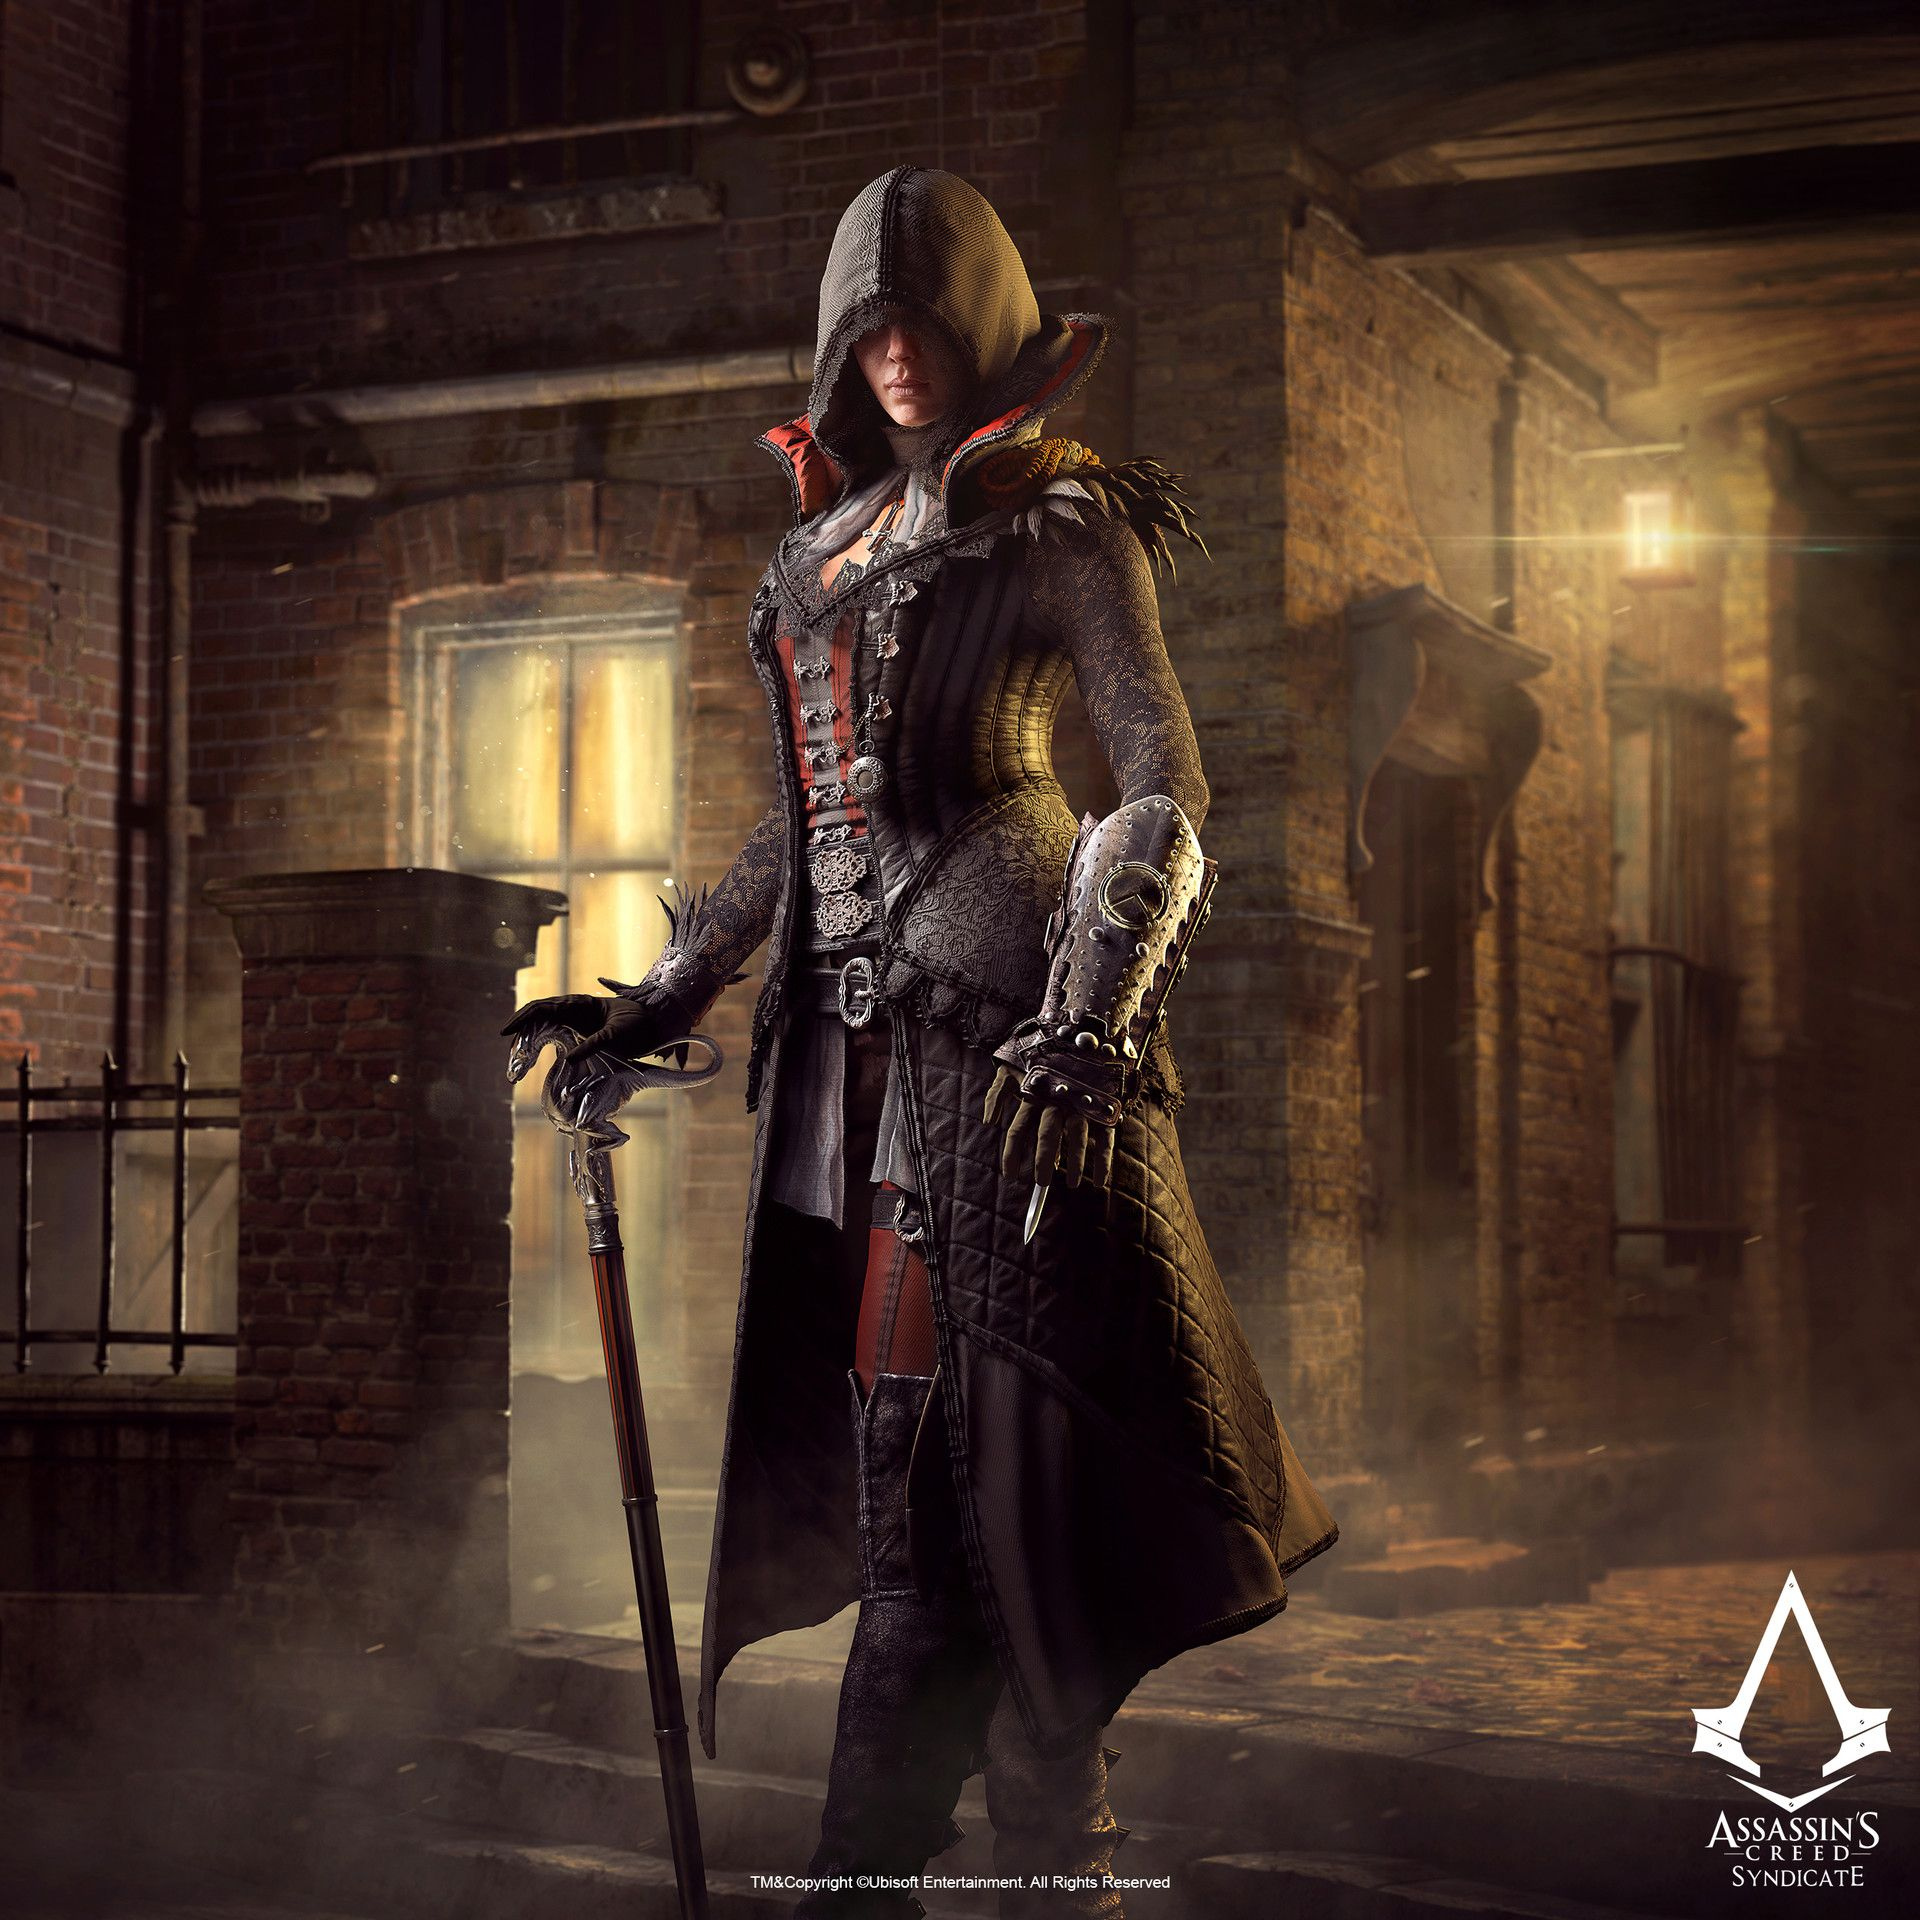 Assassin S Creed Syndicate Evie Victorian Legends Fabien Troncal Assassins Creed Syndicate Evie Assassins Creed Syndicate Assassins Creed